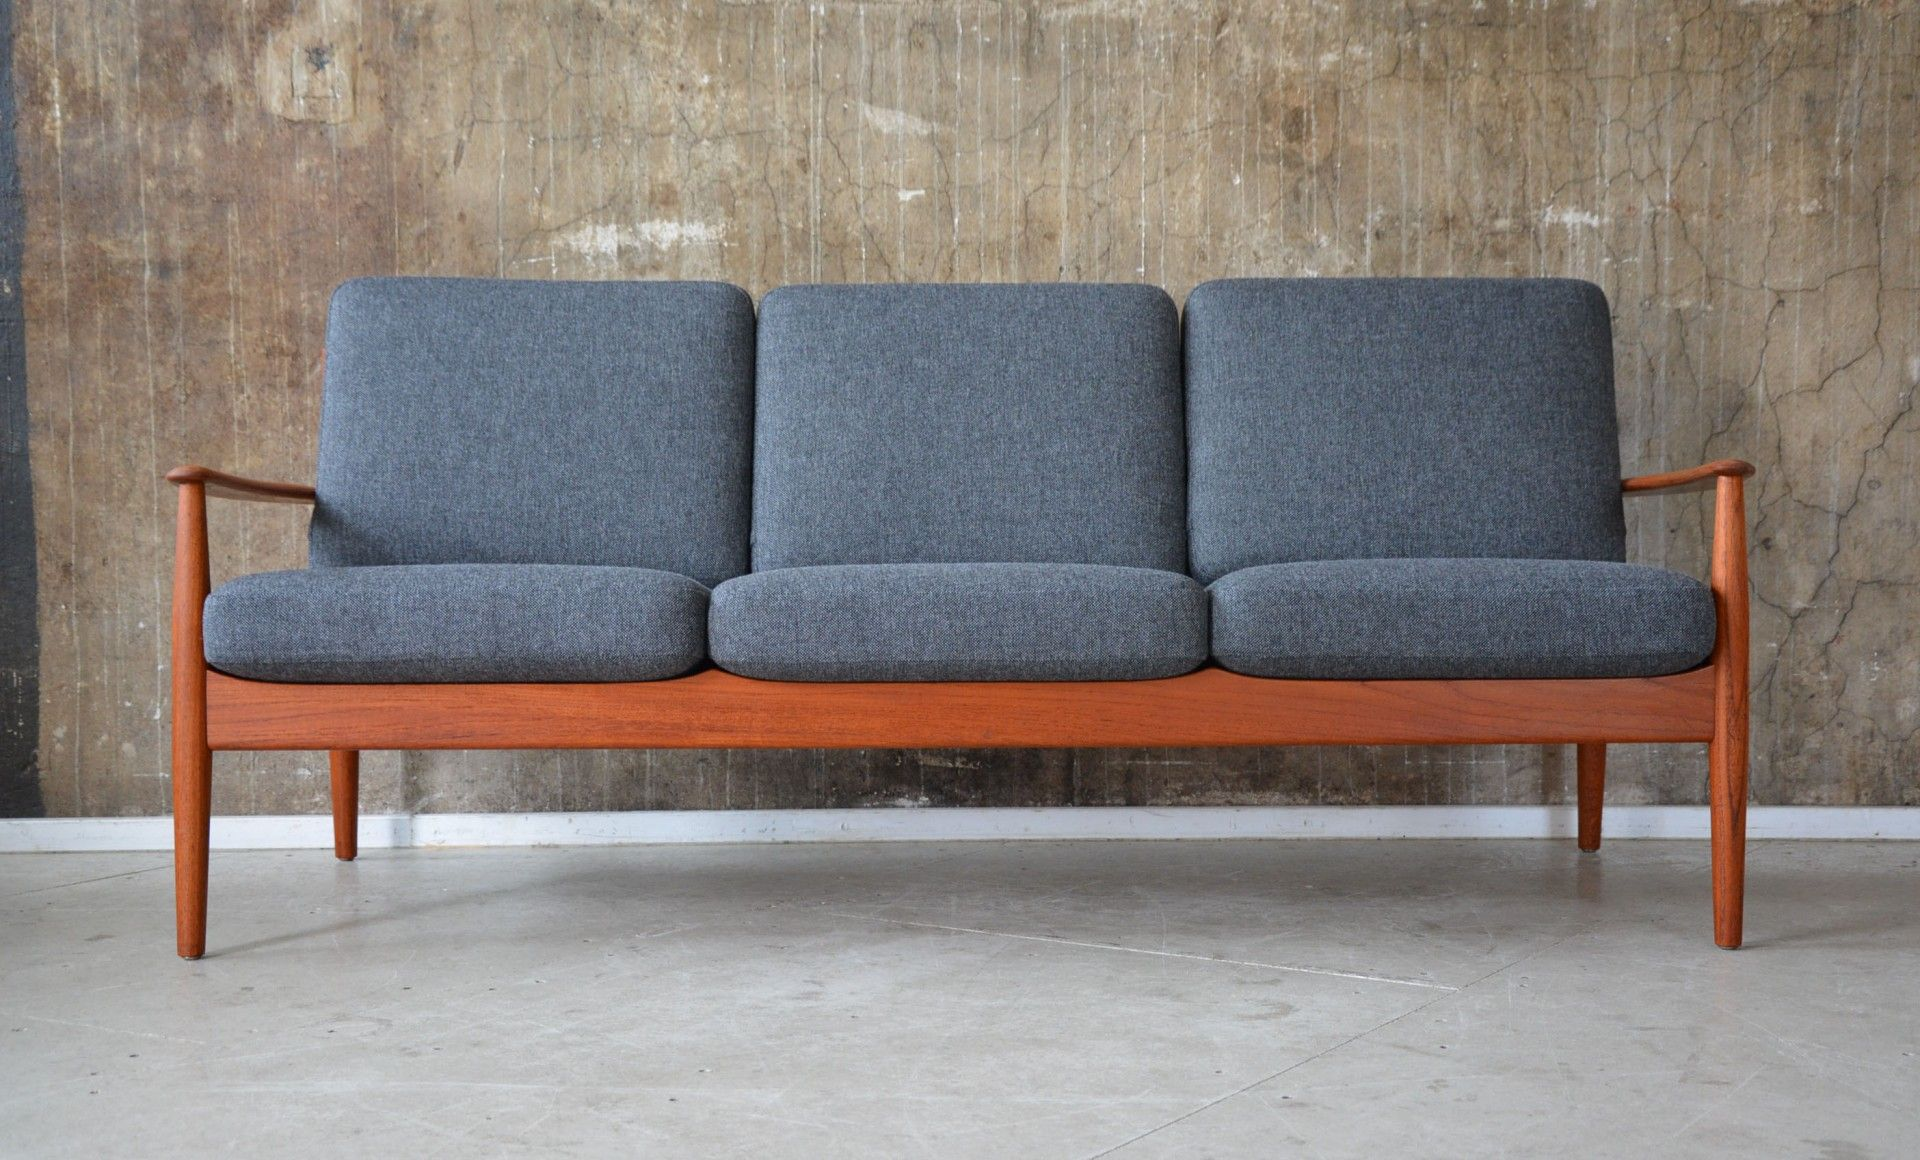 Dänisches Design Sofa Grey 3 Seater Sofa By Grete Jalk For France Son Architecture